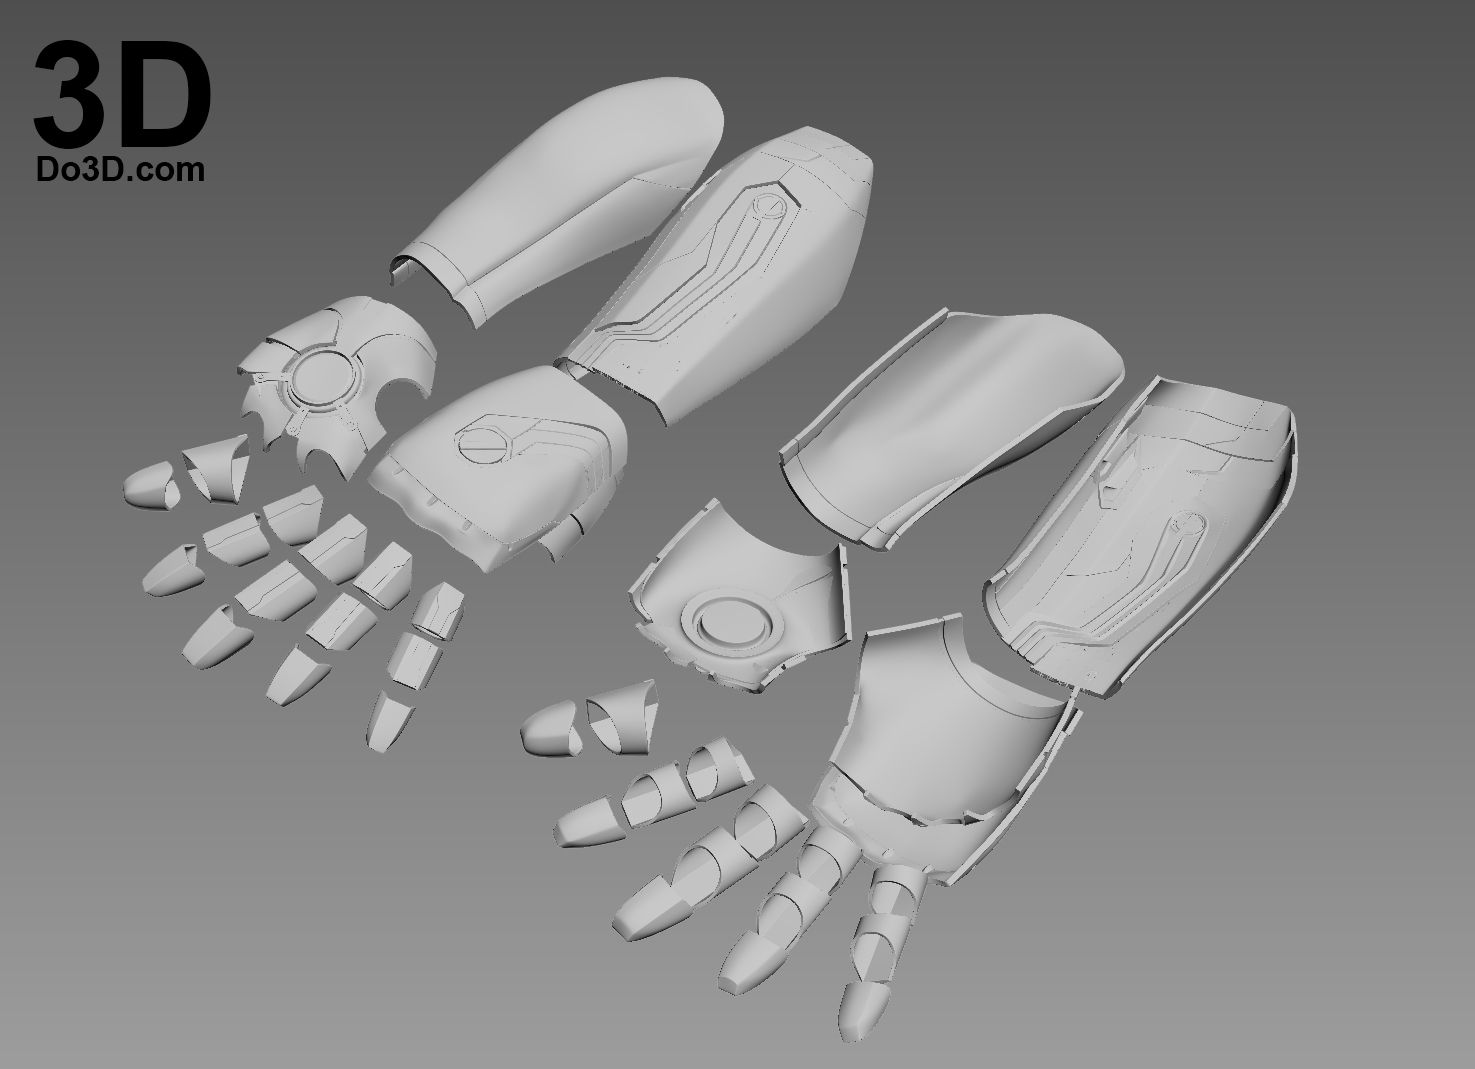 3d Printable Iron Man Mark Xlvi Model Mk 46 From Captain America Civil War Gauntlet Hand Glove Forear Iron Man Hand Iron Man Captain America Civil War